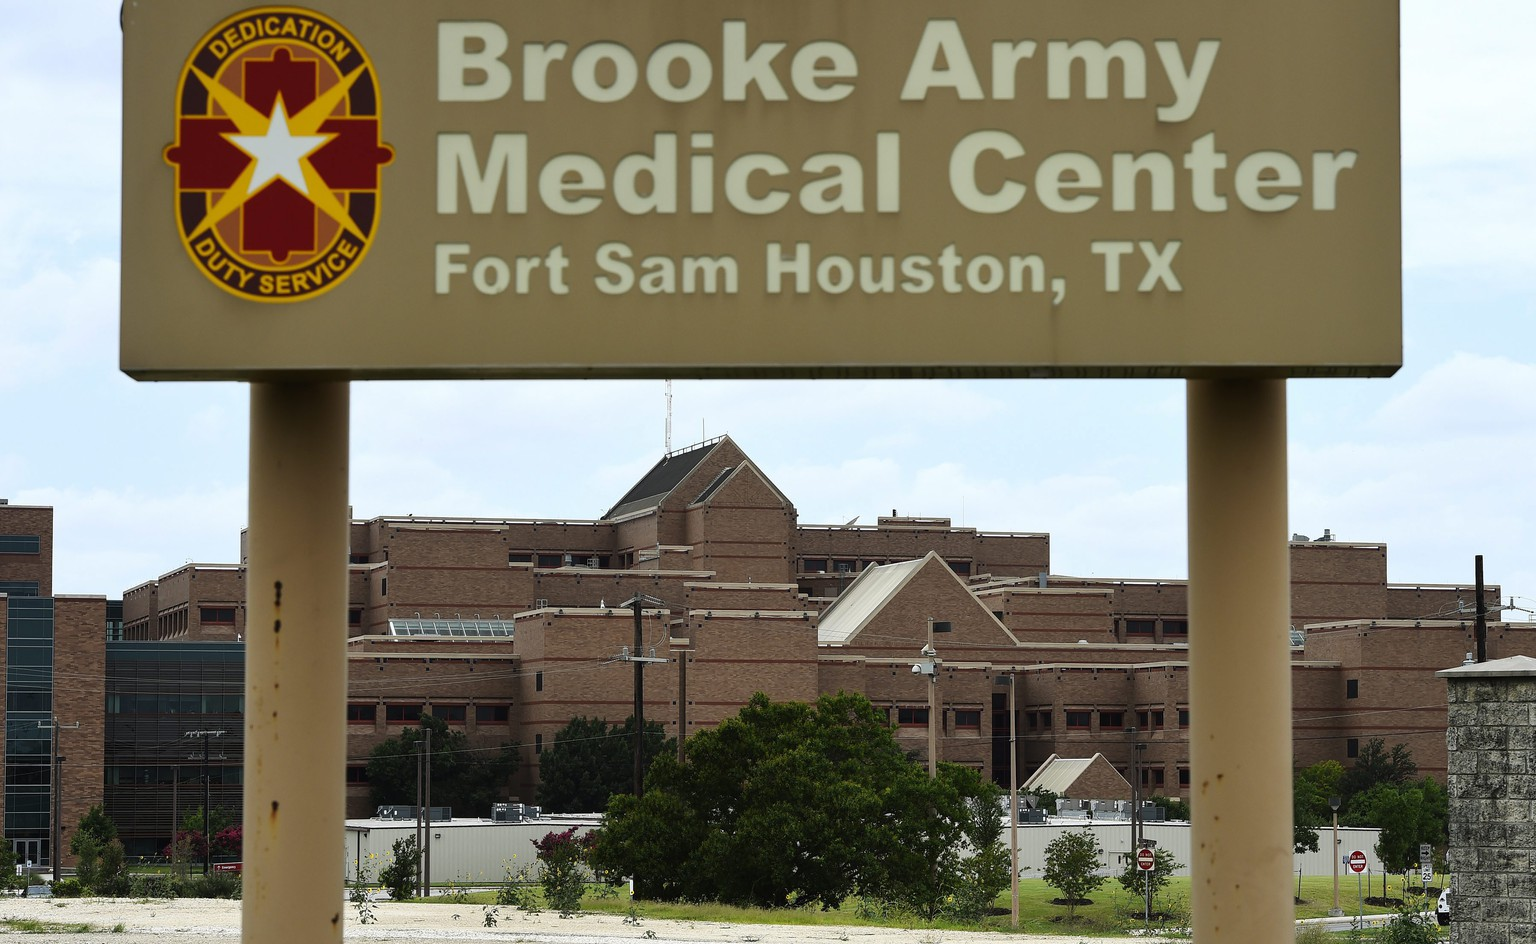 epa04257262 Brooke Army Medical Center is shown in San Antonio, Texas, USA, 14 June 2014. US Army Sergeant Bowe Bergdahl returned to the United States for further treatment at Brooke Army Medical Center after being held captive for five years by the Taliban.  EPA/LARRY W. SMITH